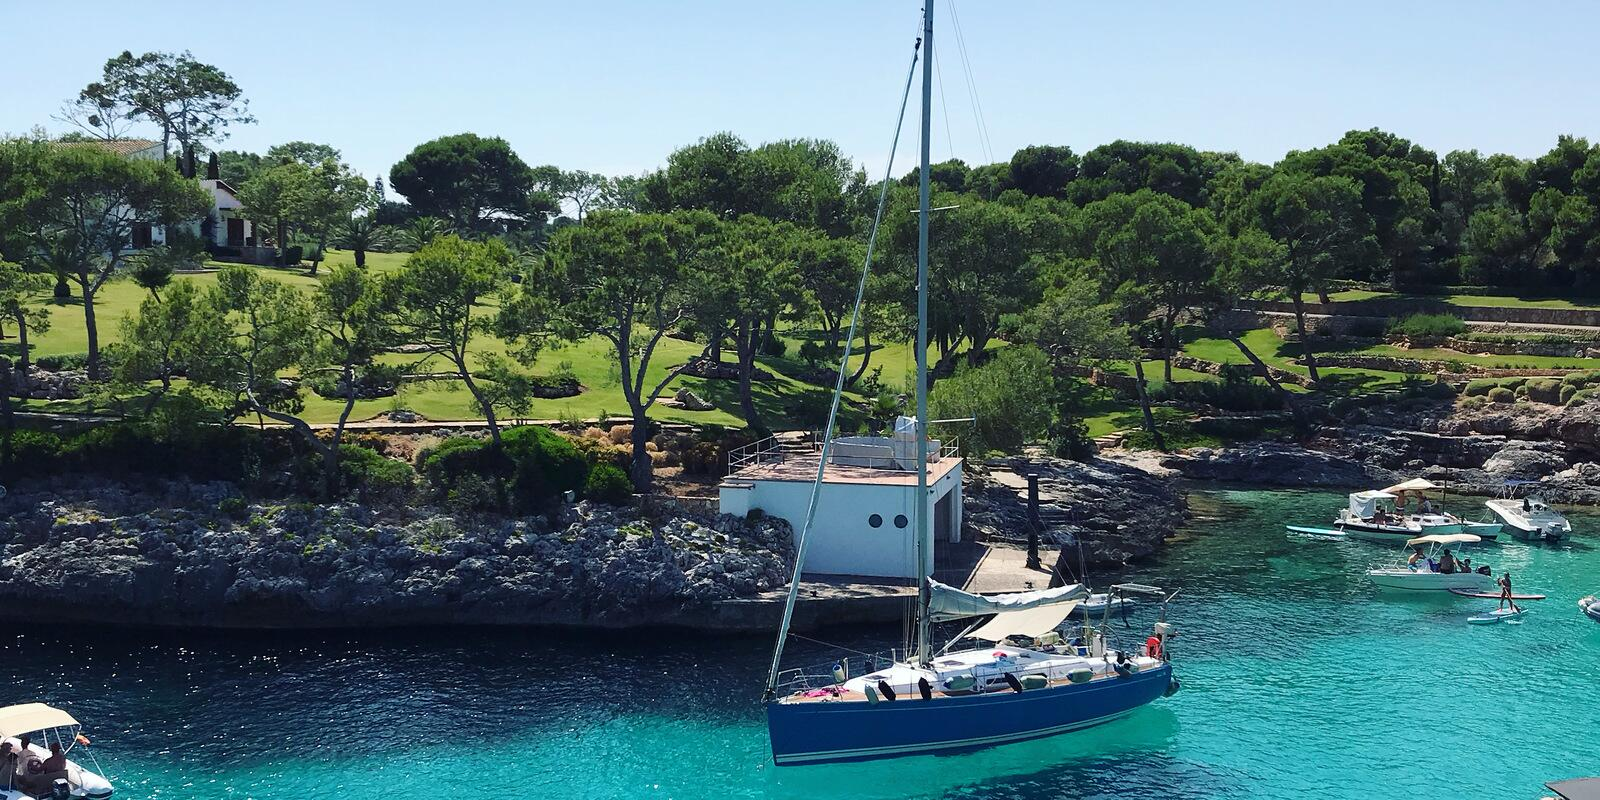 Learn to sail with a fantastic holiday in Mallorca and Menorca!